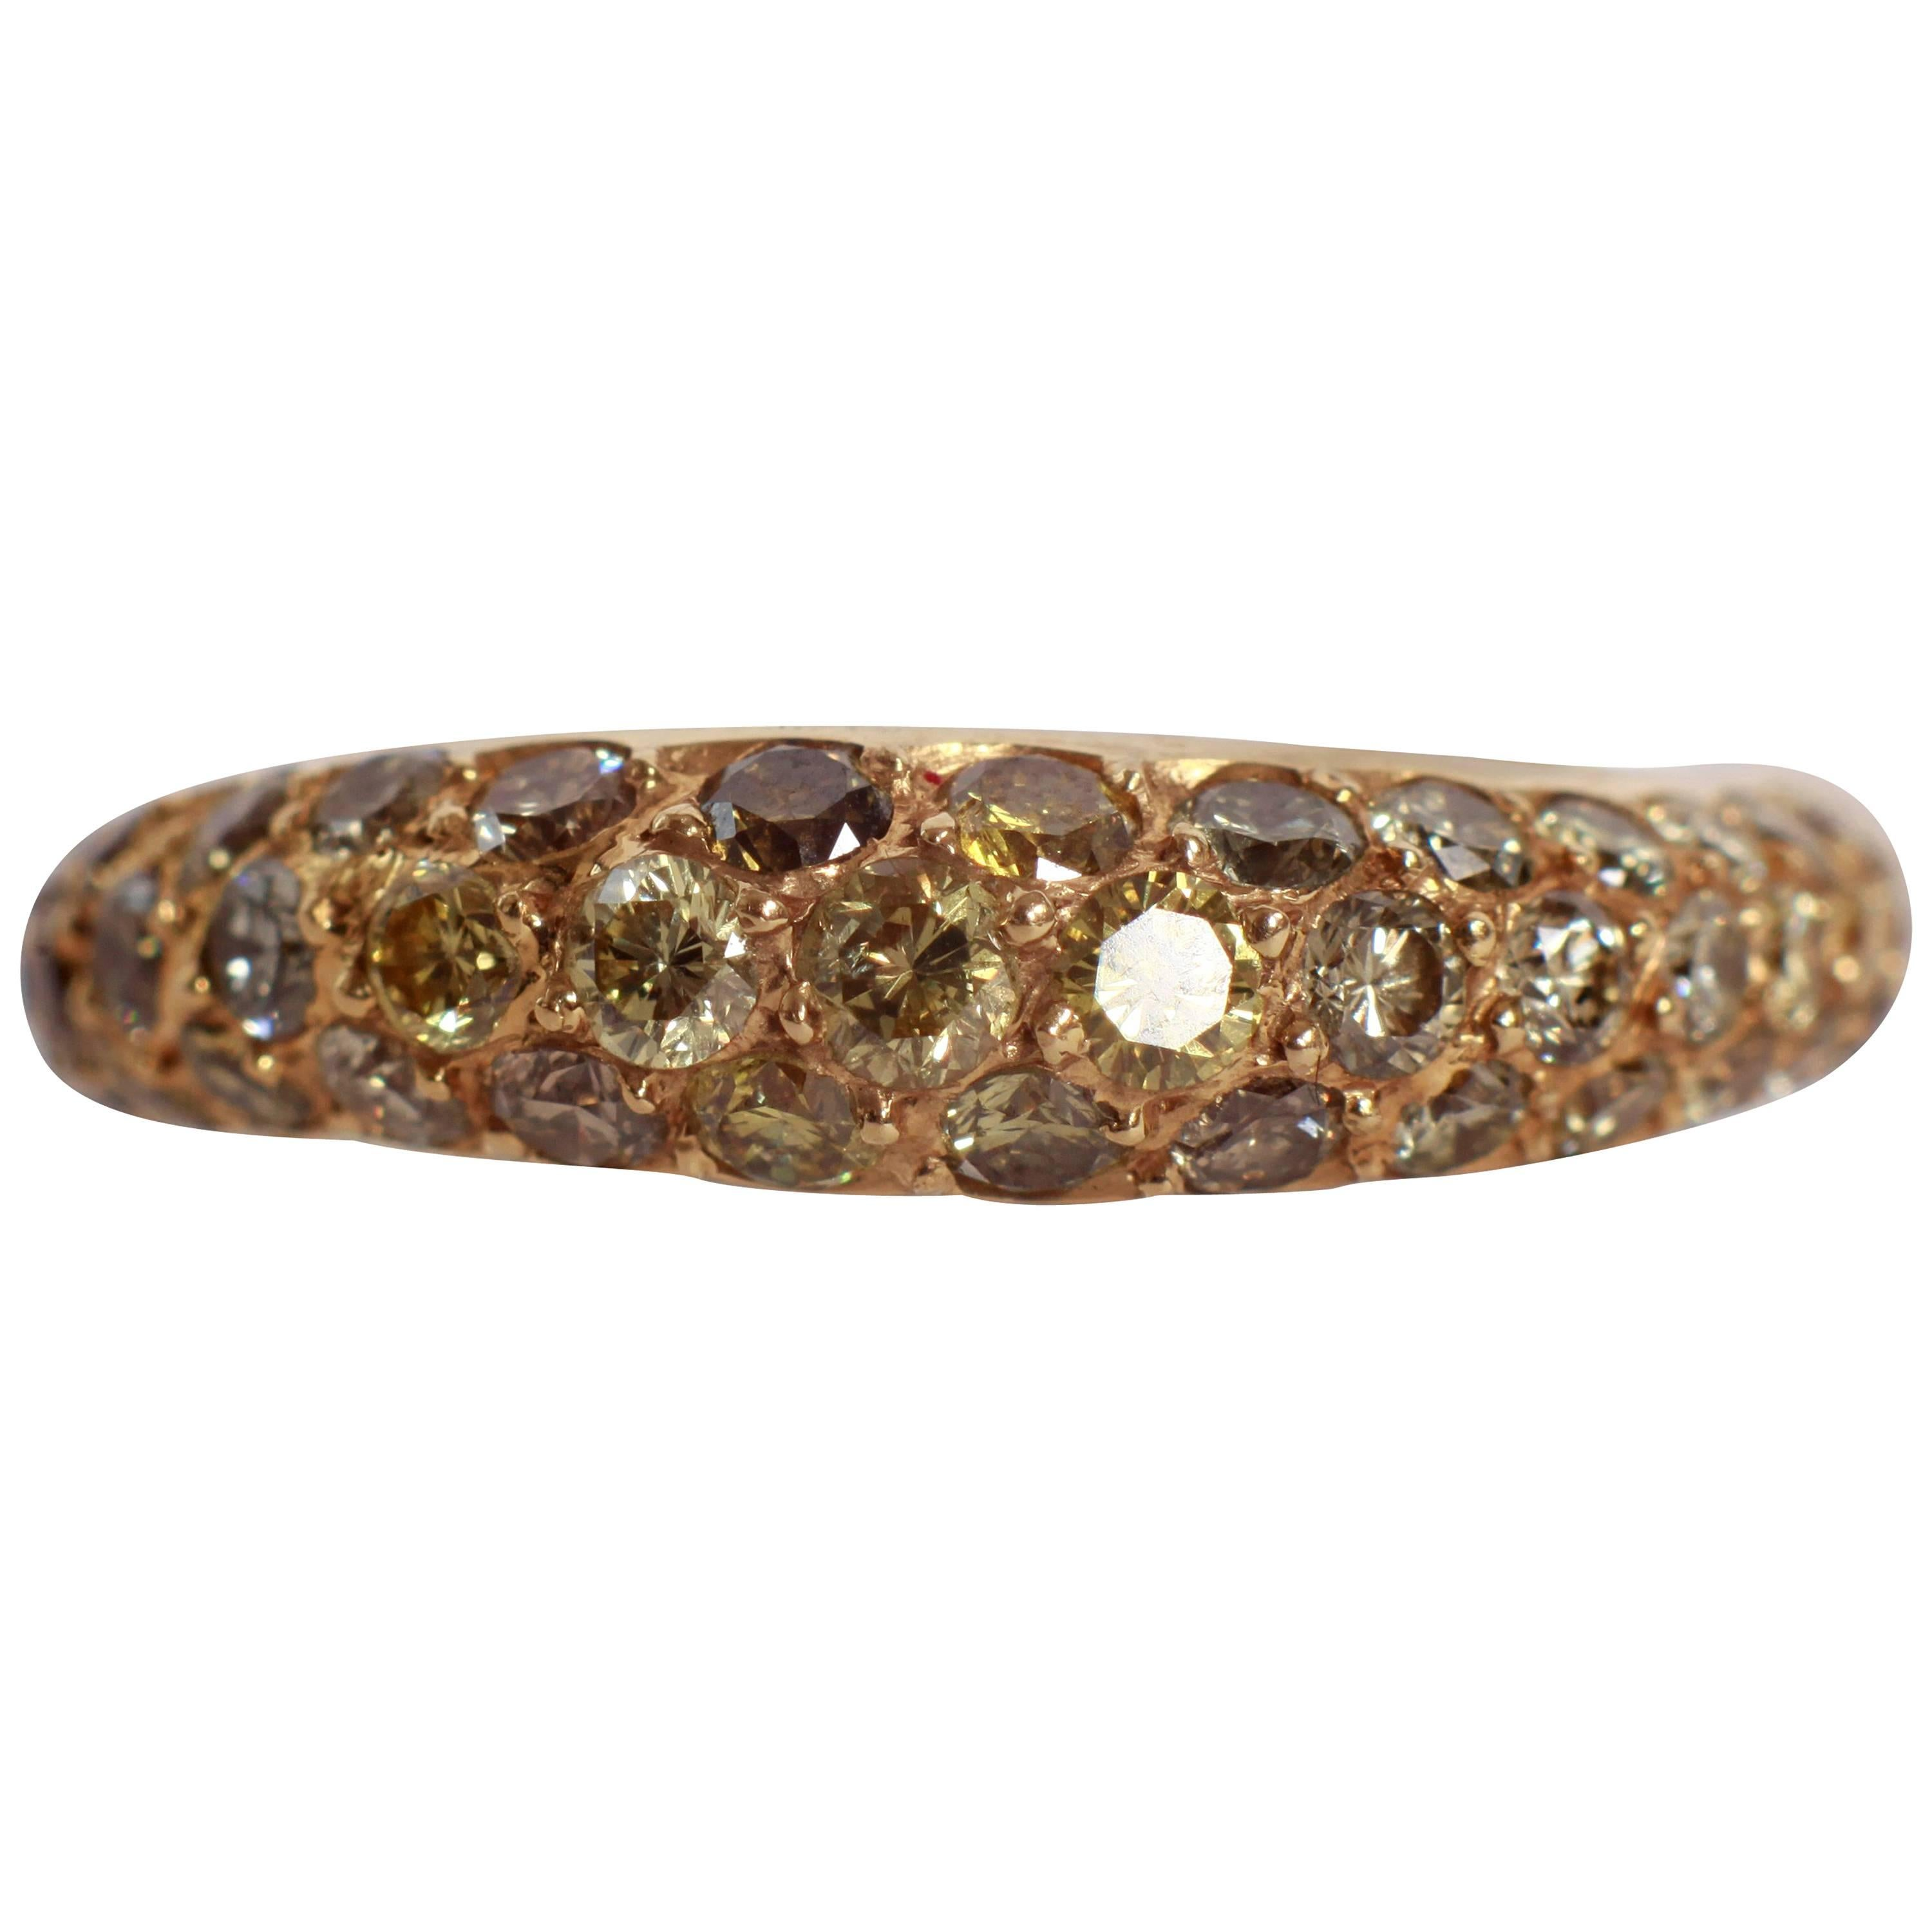 1,13 Carats Lightly Wavy Yellow Diamond Pave-Set Band Ring  by Marion Jeantet